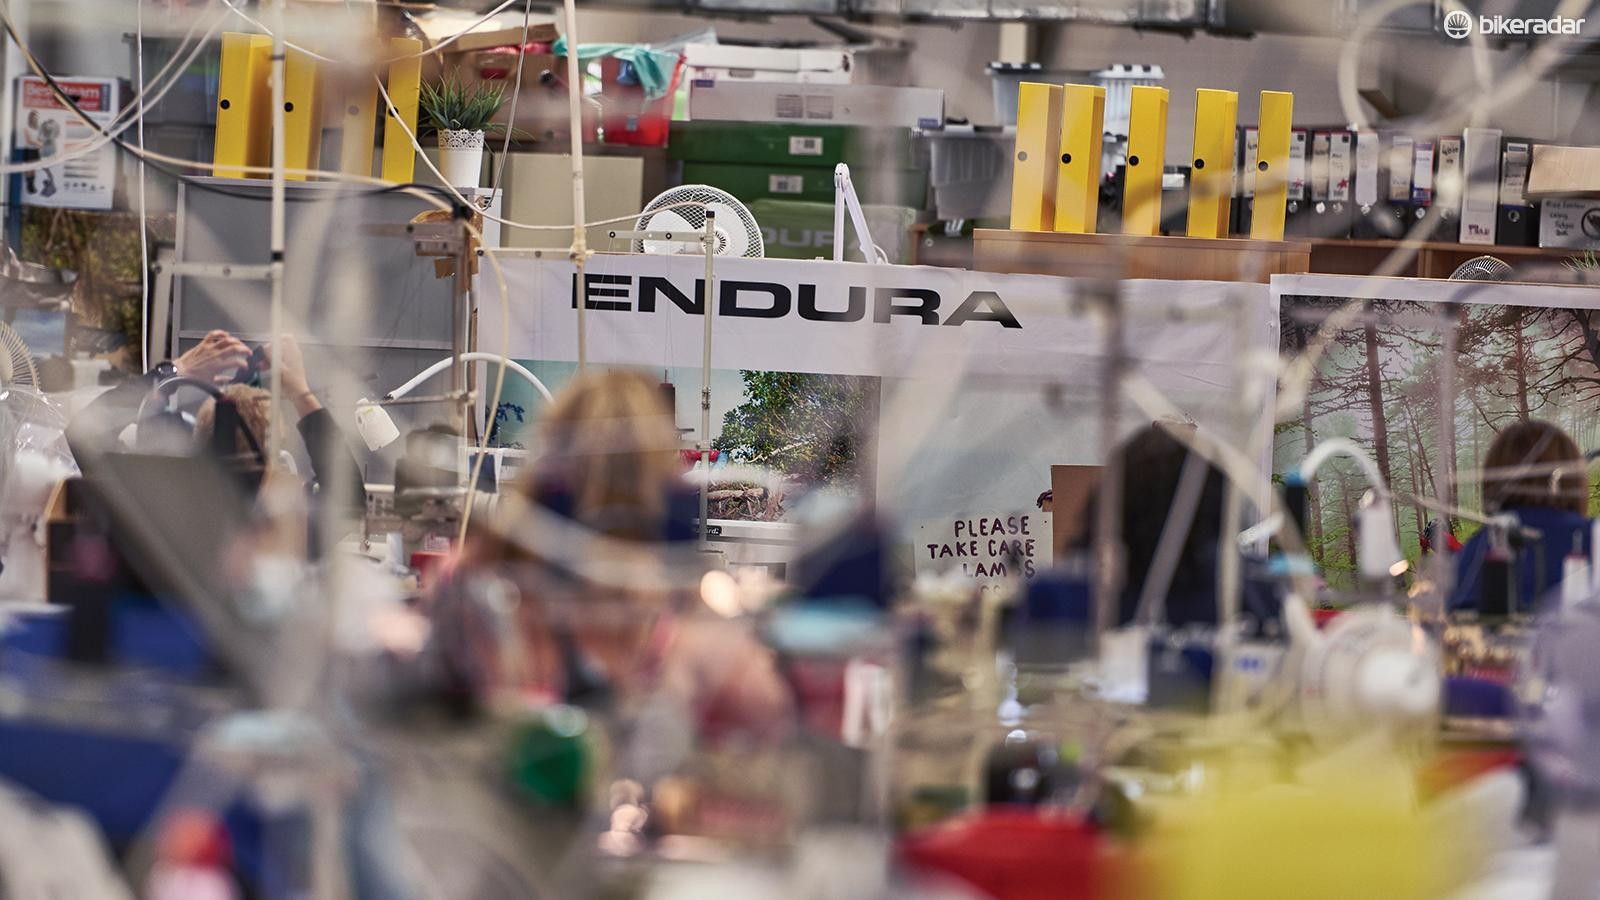 Endura has an on-site factory